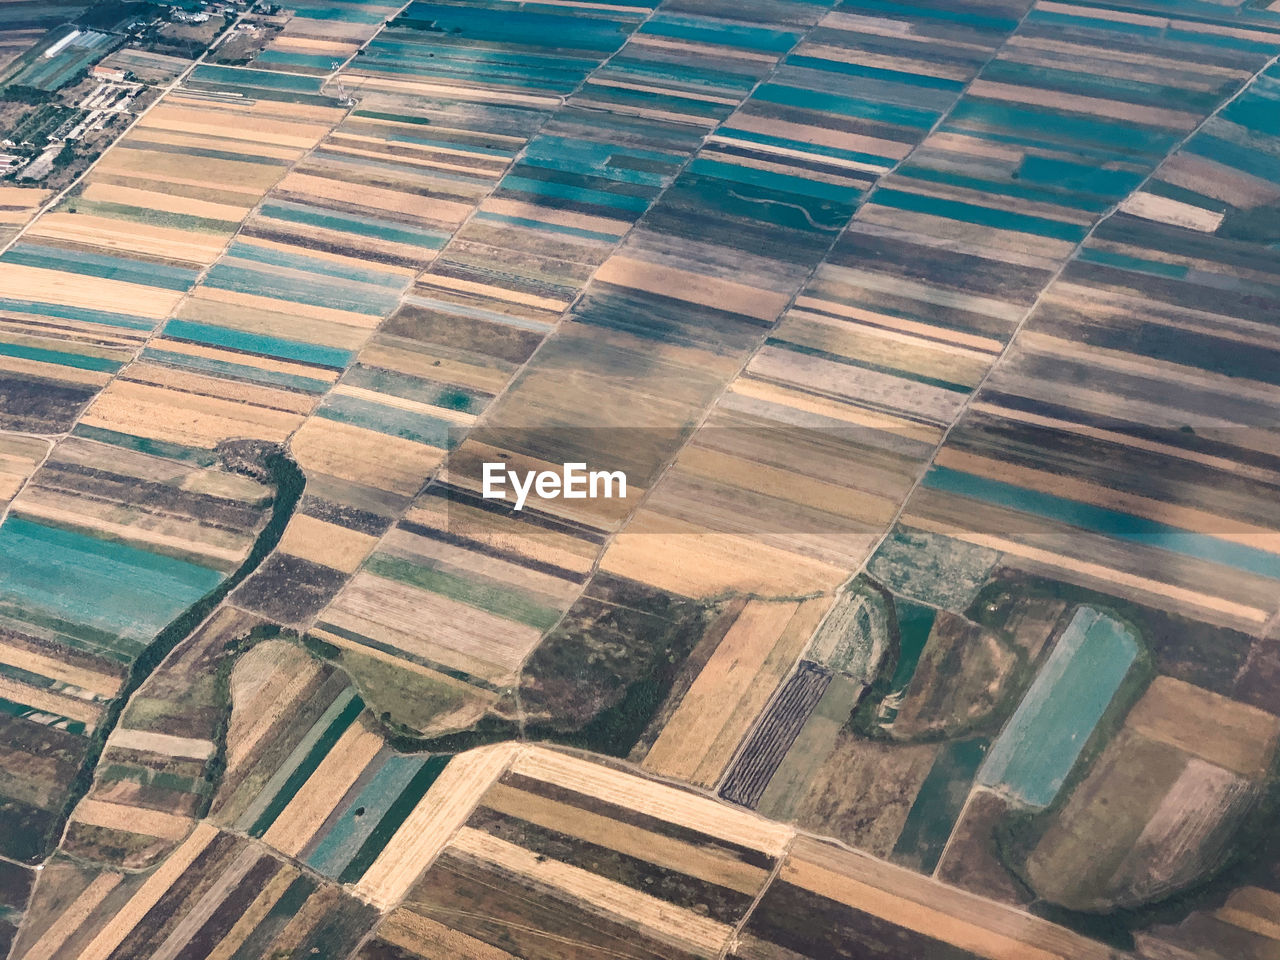 high angle view, no people, pattern, day, aerial view, full frame, nature, patchwork landscape, landscape, backgrounds, wood - material, farm, agriculture, water, environment, outdoors, rural scene, field, window